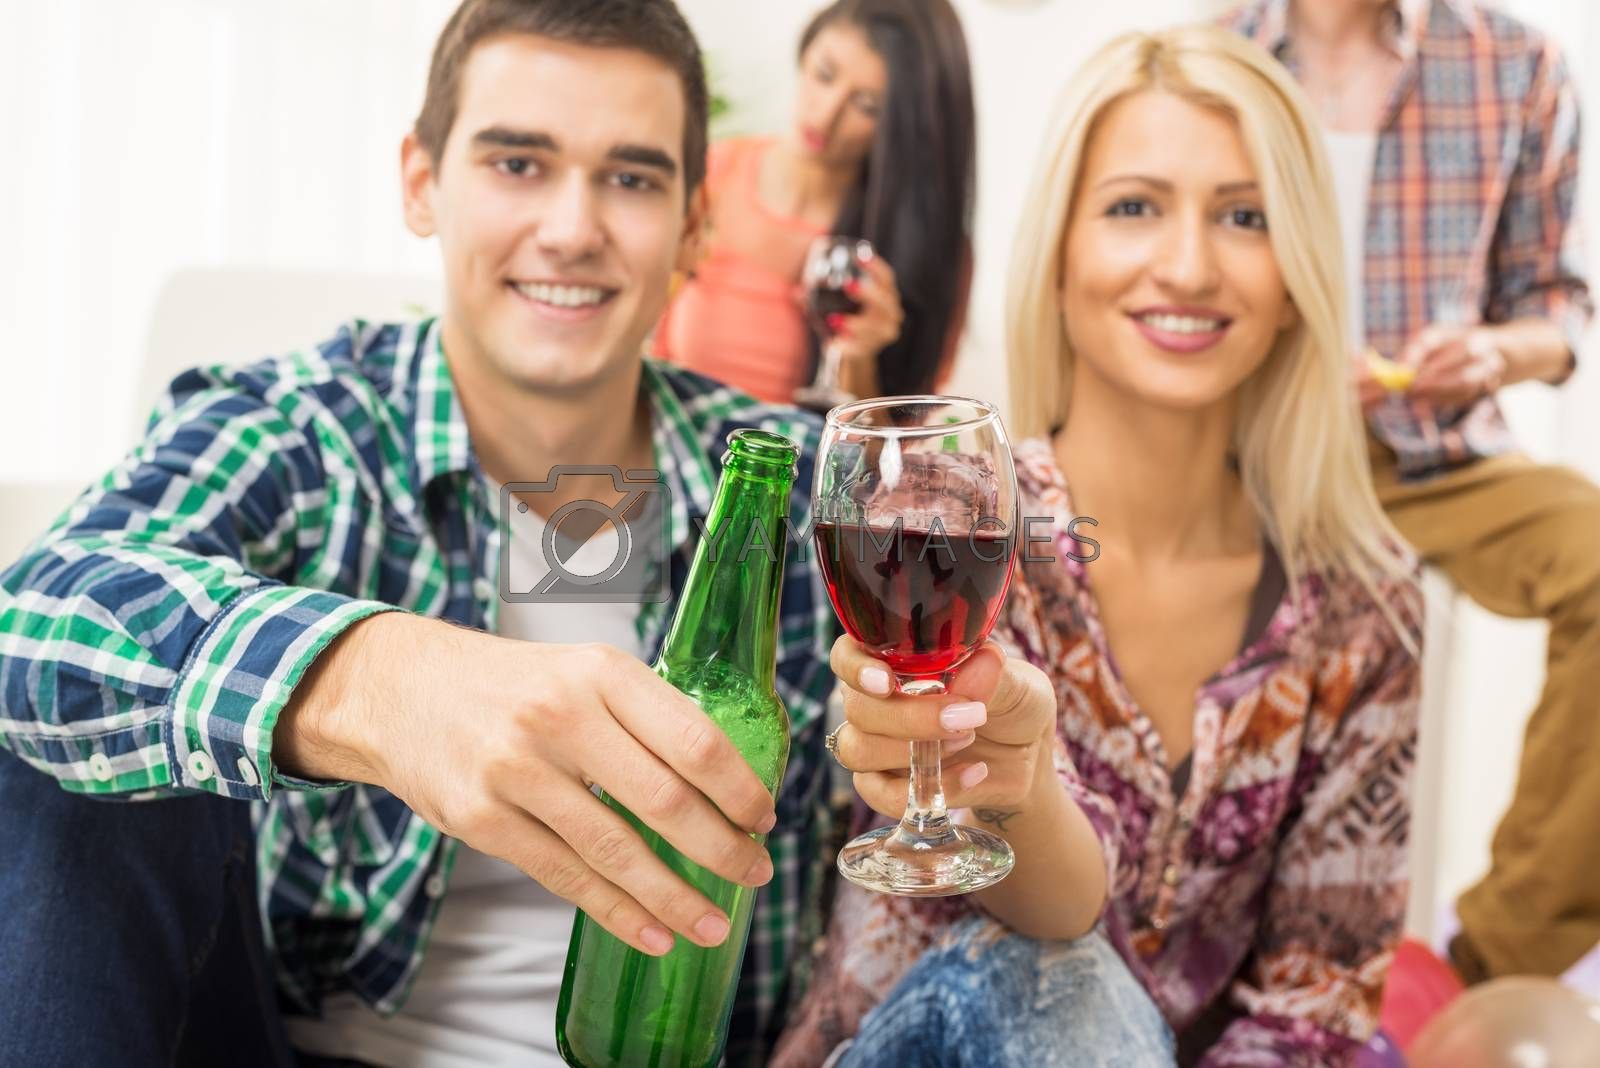 Young couple at home party with a smile on their faces out of focus, toasting with drinks that are in the foreground. In the background is another young couple.